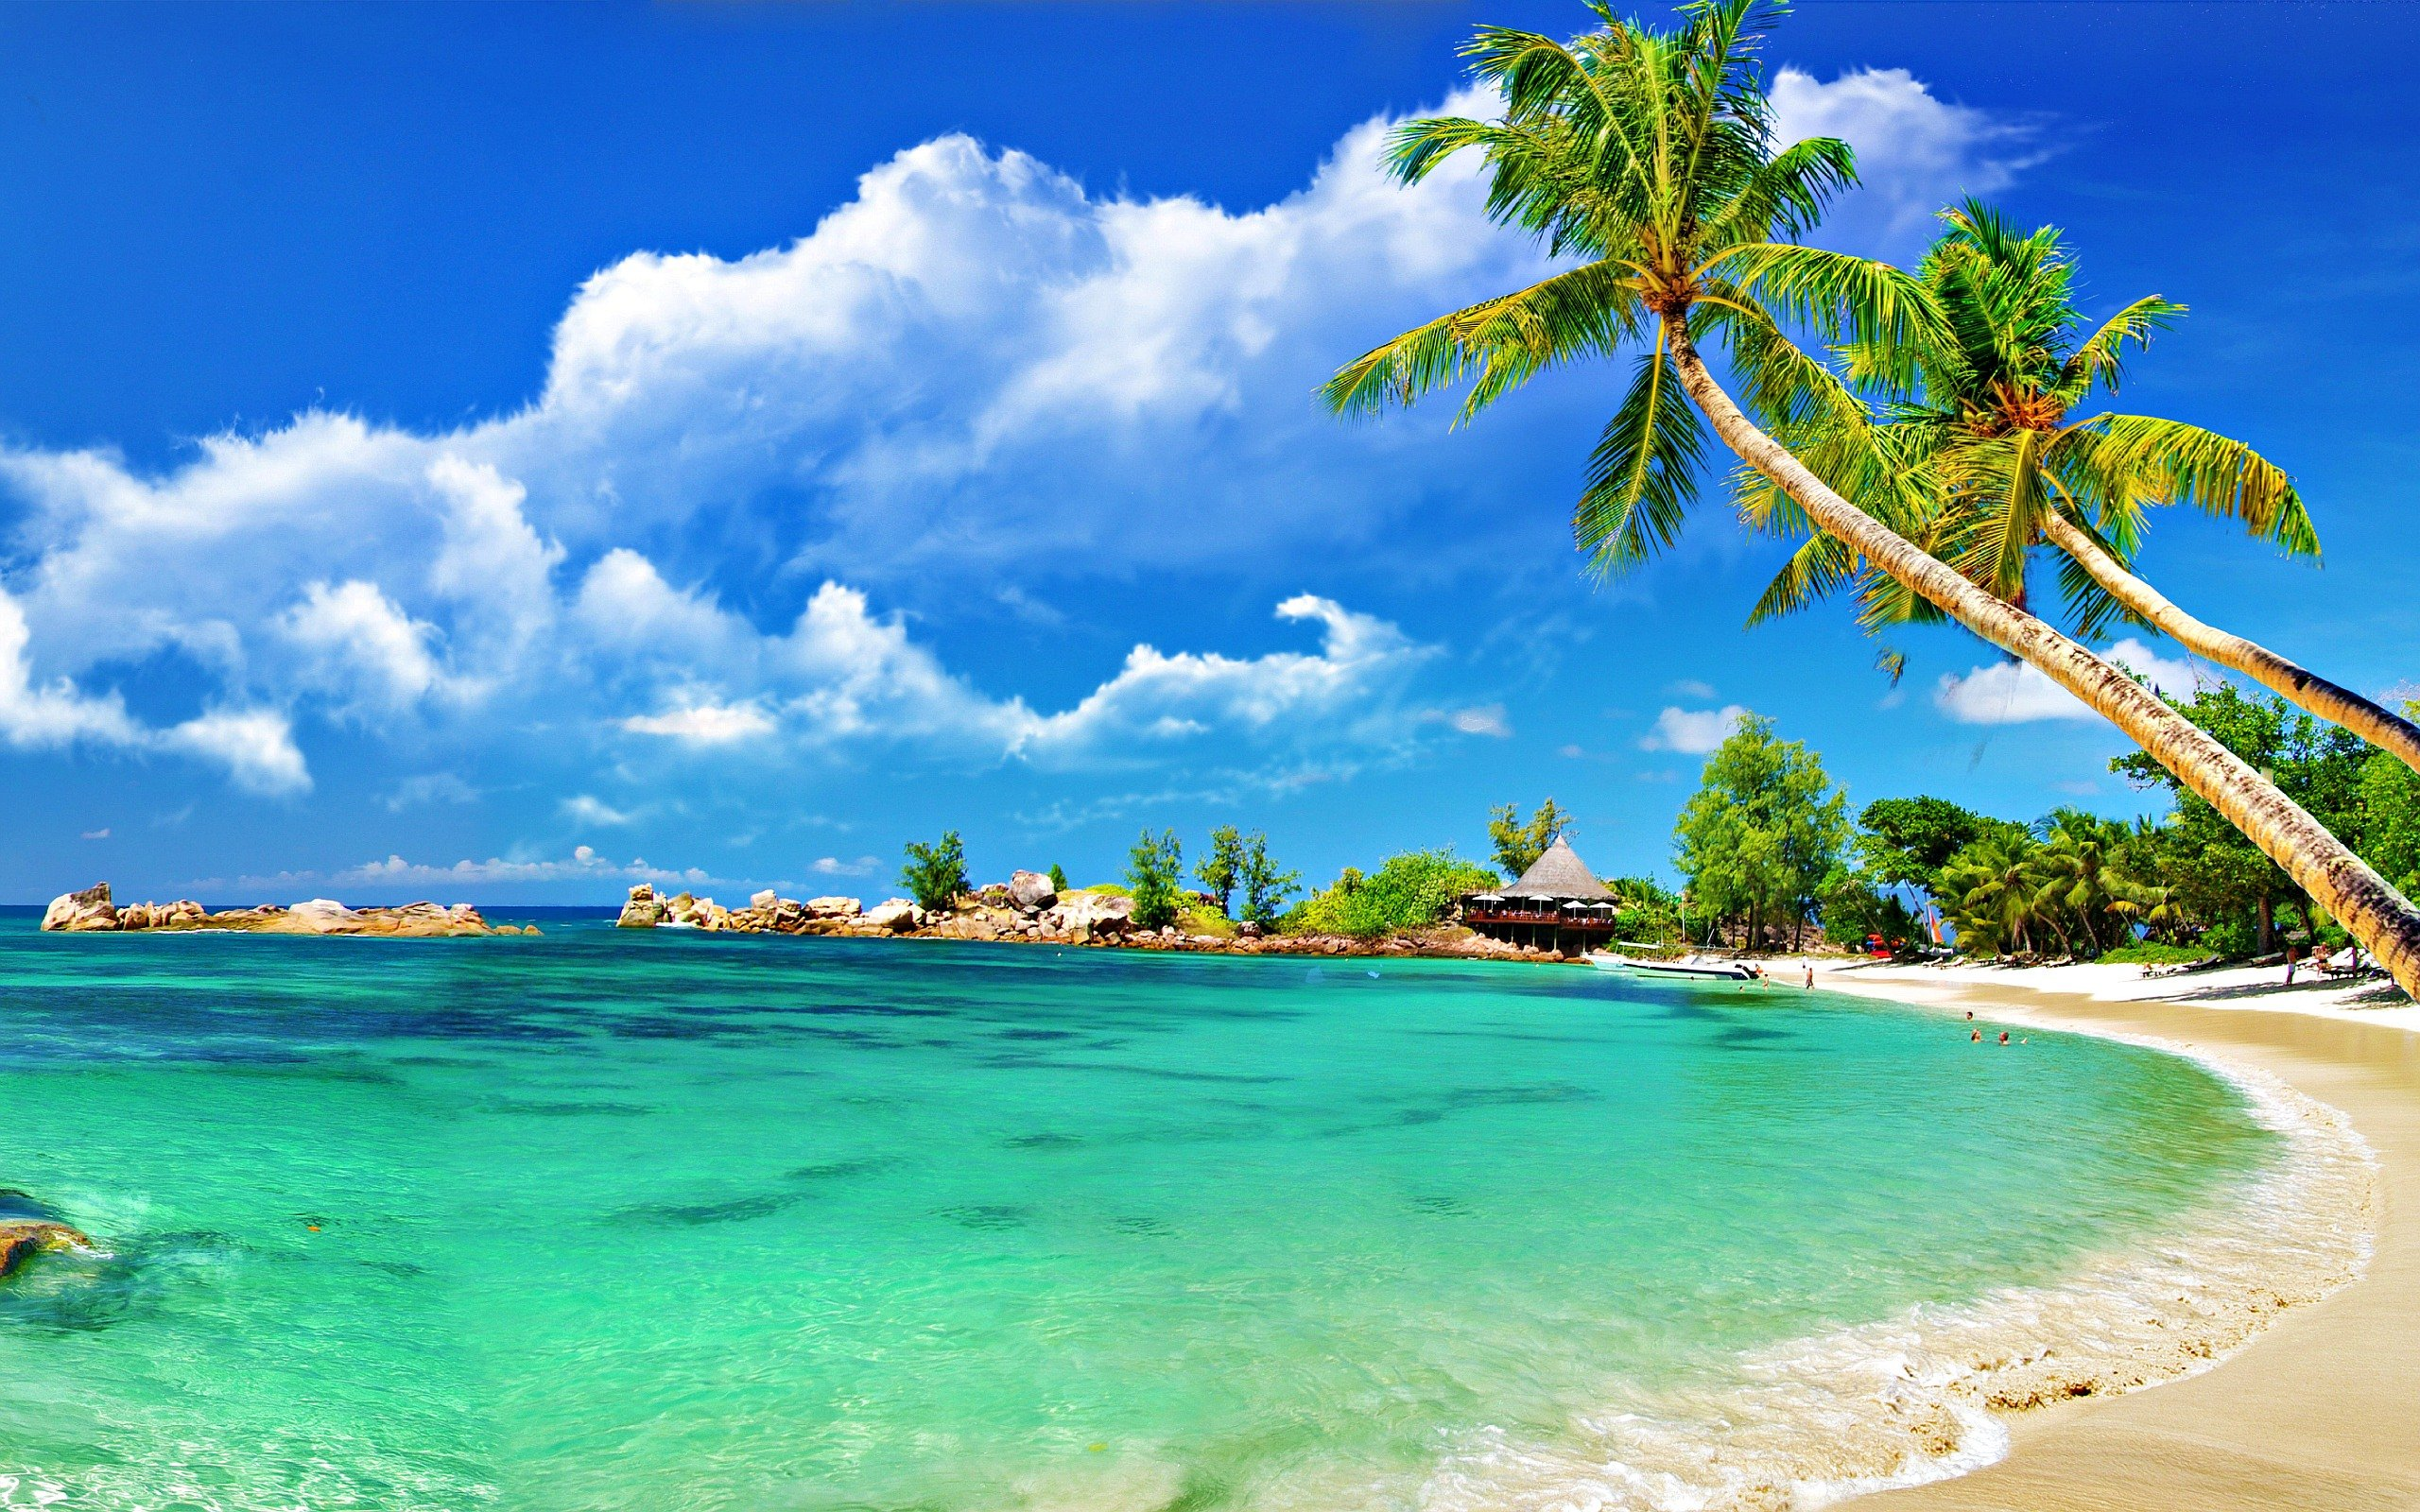 Tropical Beach Wallpapers wallpaper Tropical Beach Wallpapers hd 2560x1600